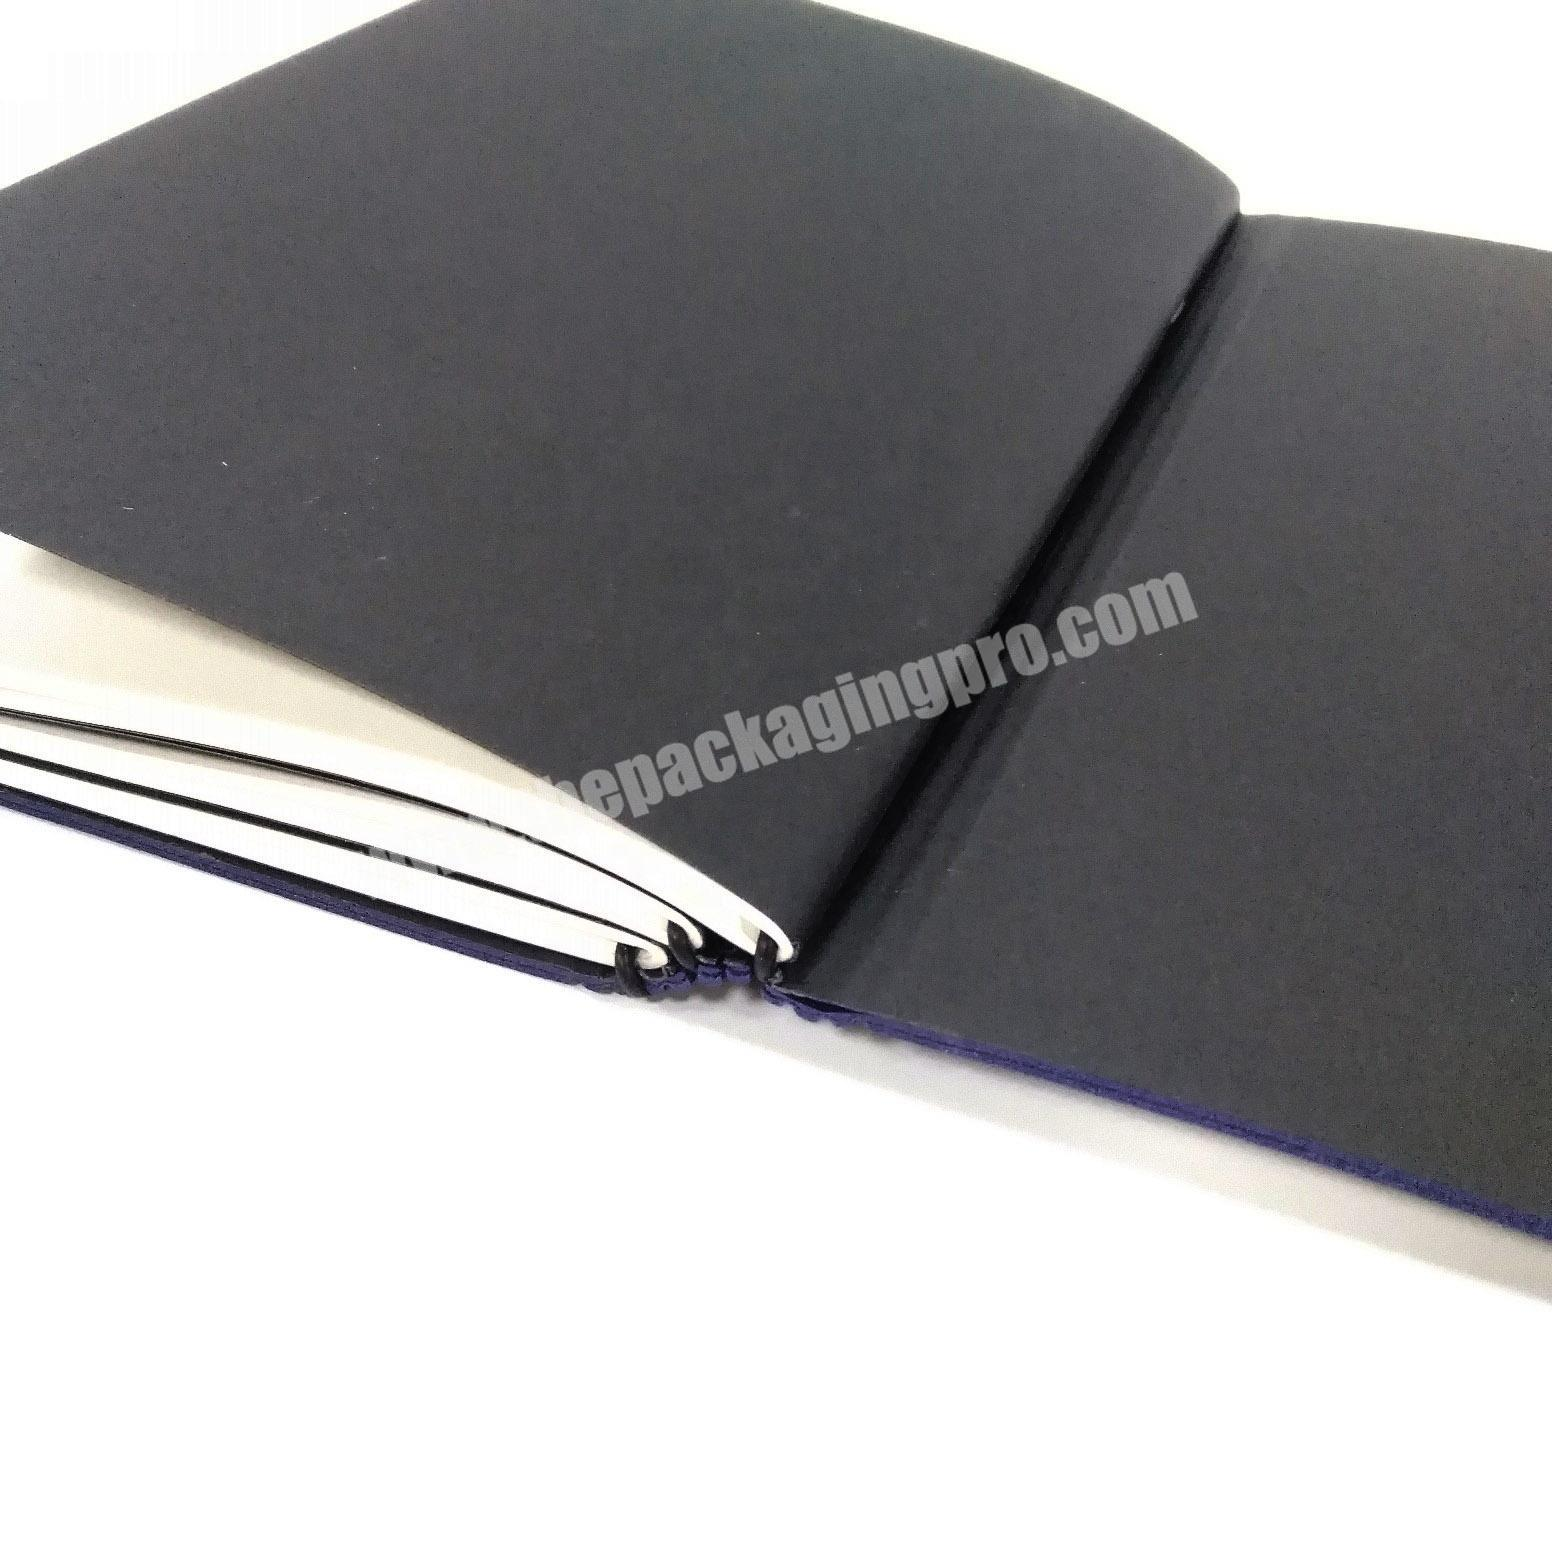 Shop High quality Office Supplies Notebook A5 Journal Student Diary Book Daily Planner